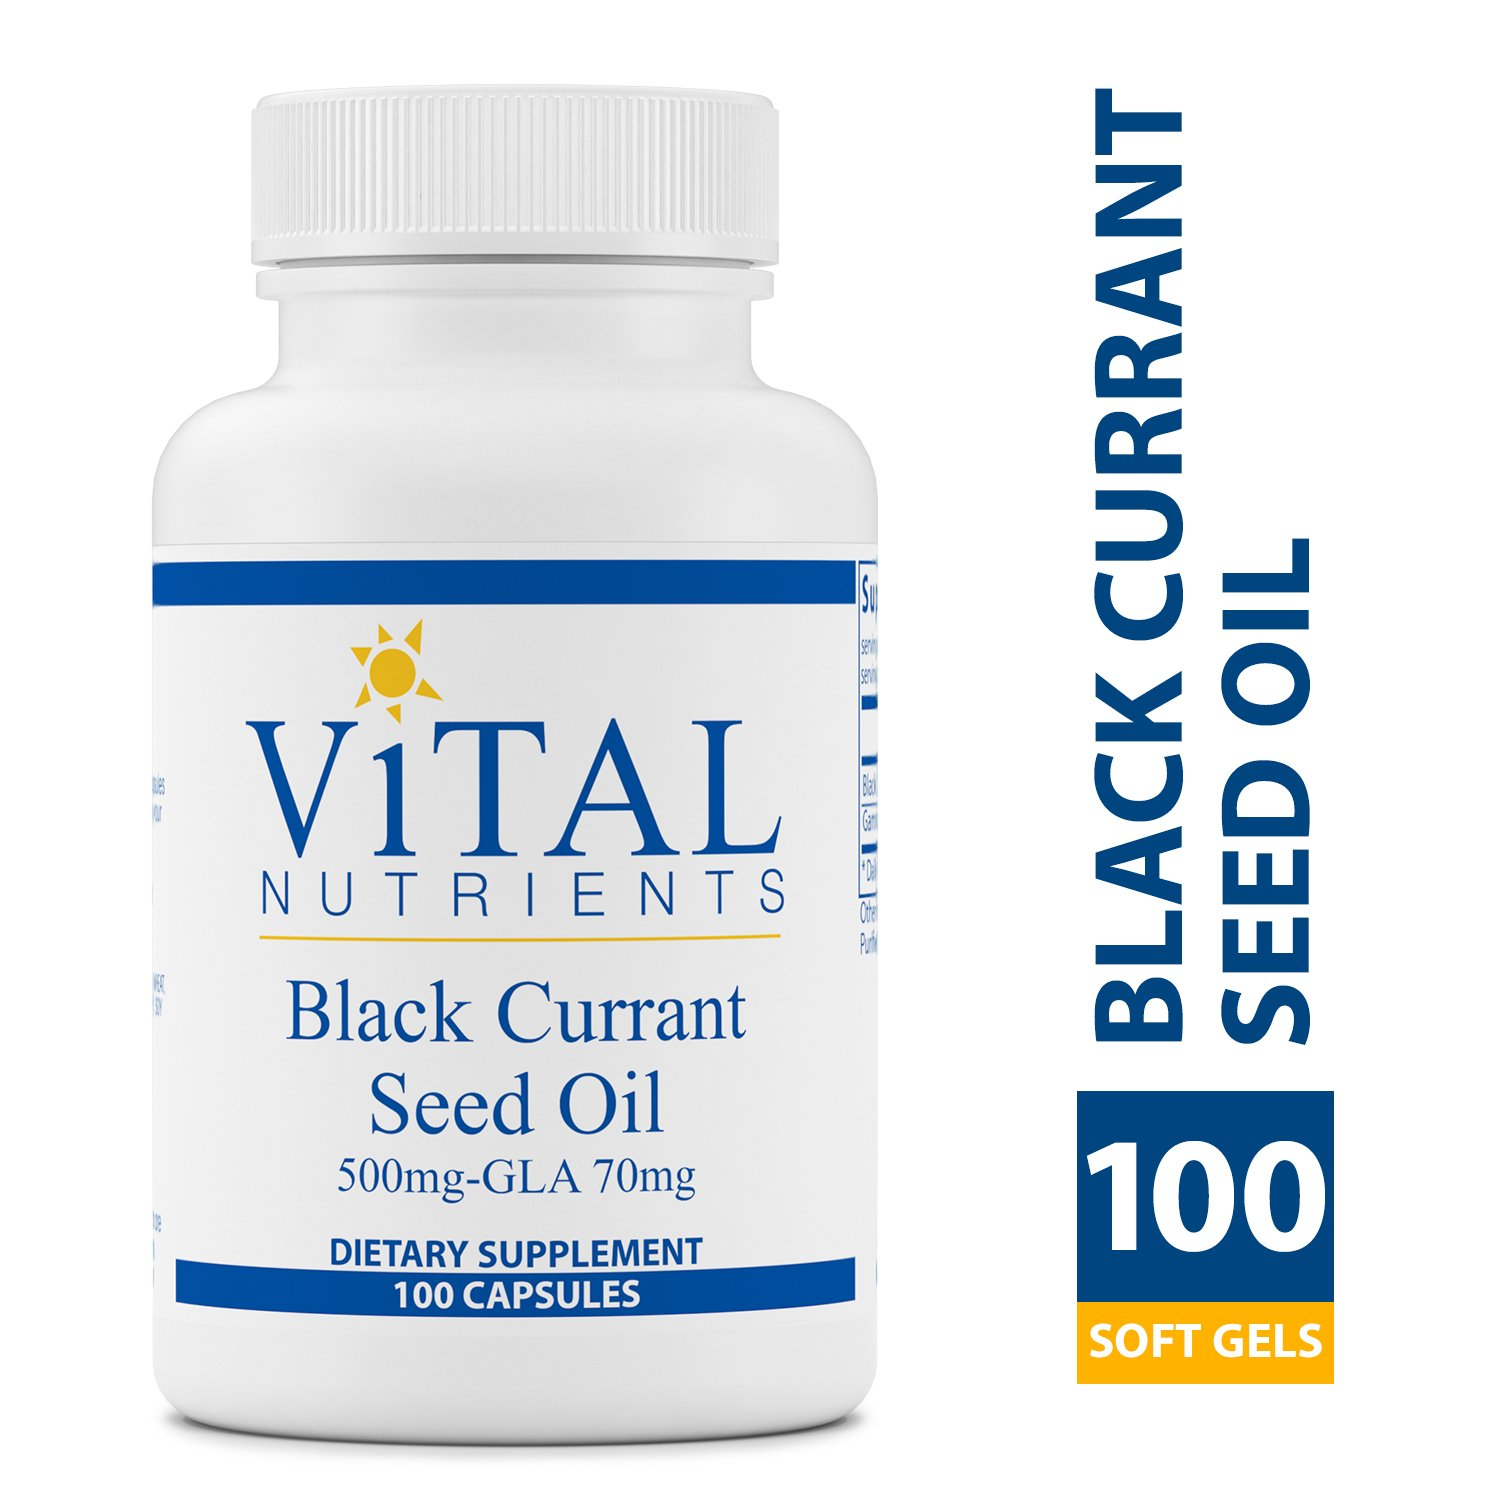 Vital Nutrients - Black Currant Seed Oil - Essential Omega 6 Fatty Acid - Contains Gamma Linolenic Acid (GLA) - Cartilage, Joint, & Nerve Function Support - 100 Softgel Capsules per Bottle by Vital Nutrients